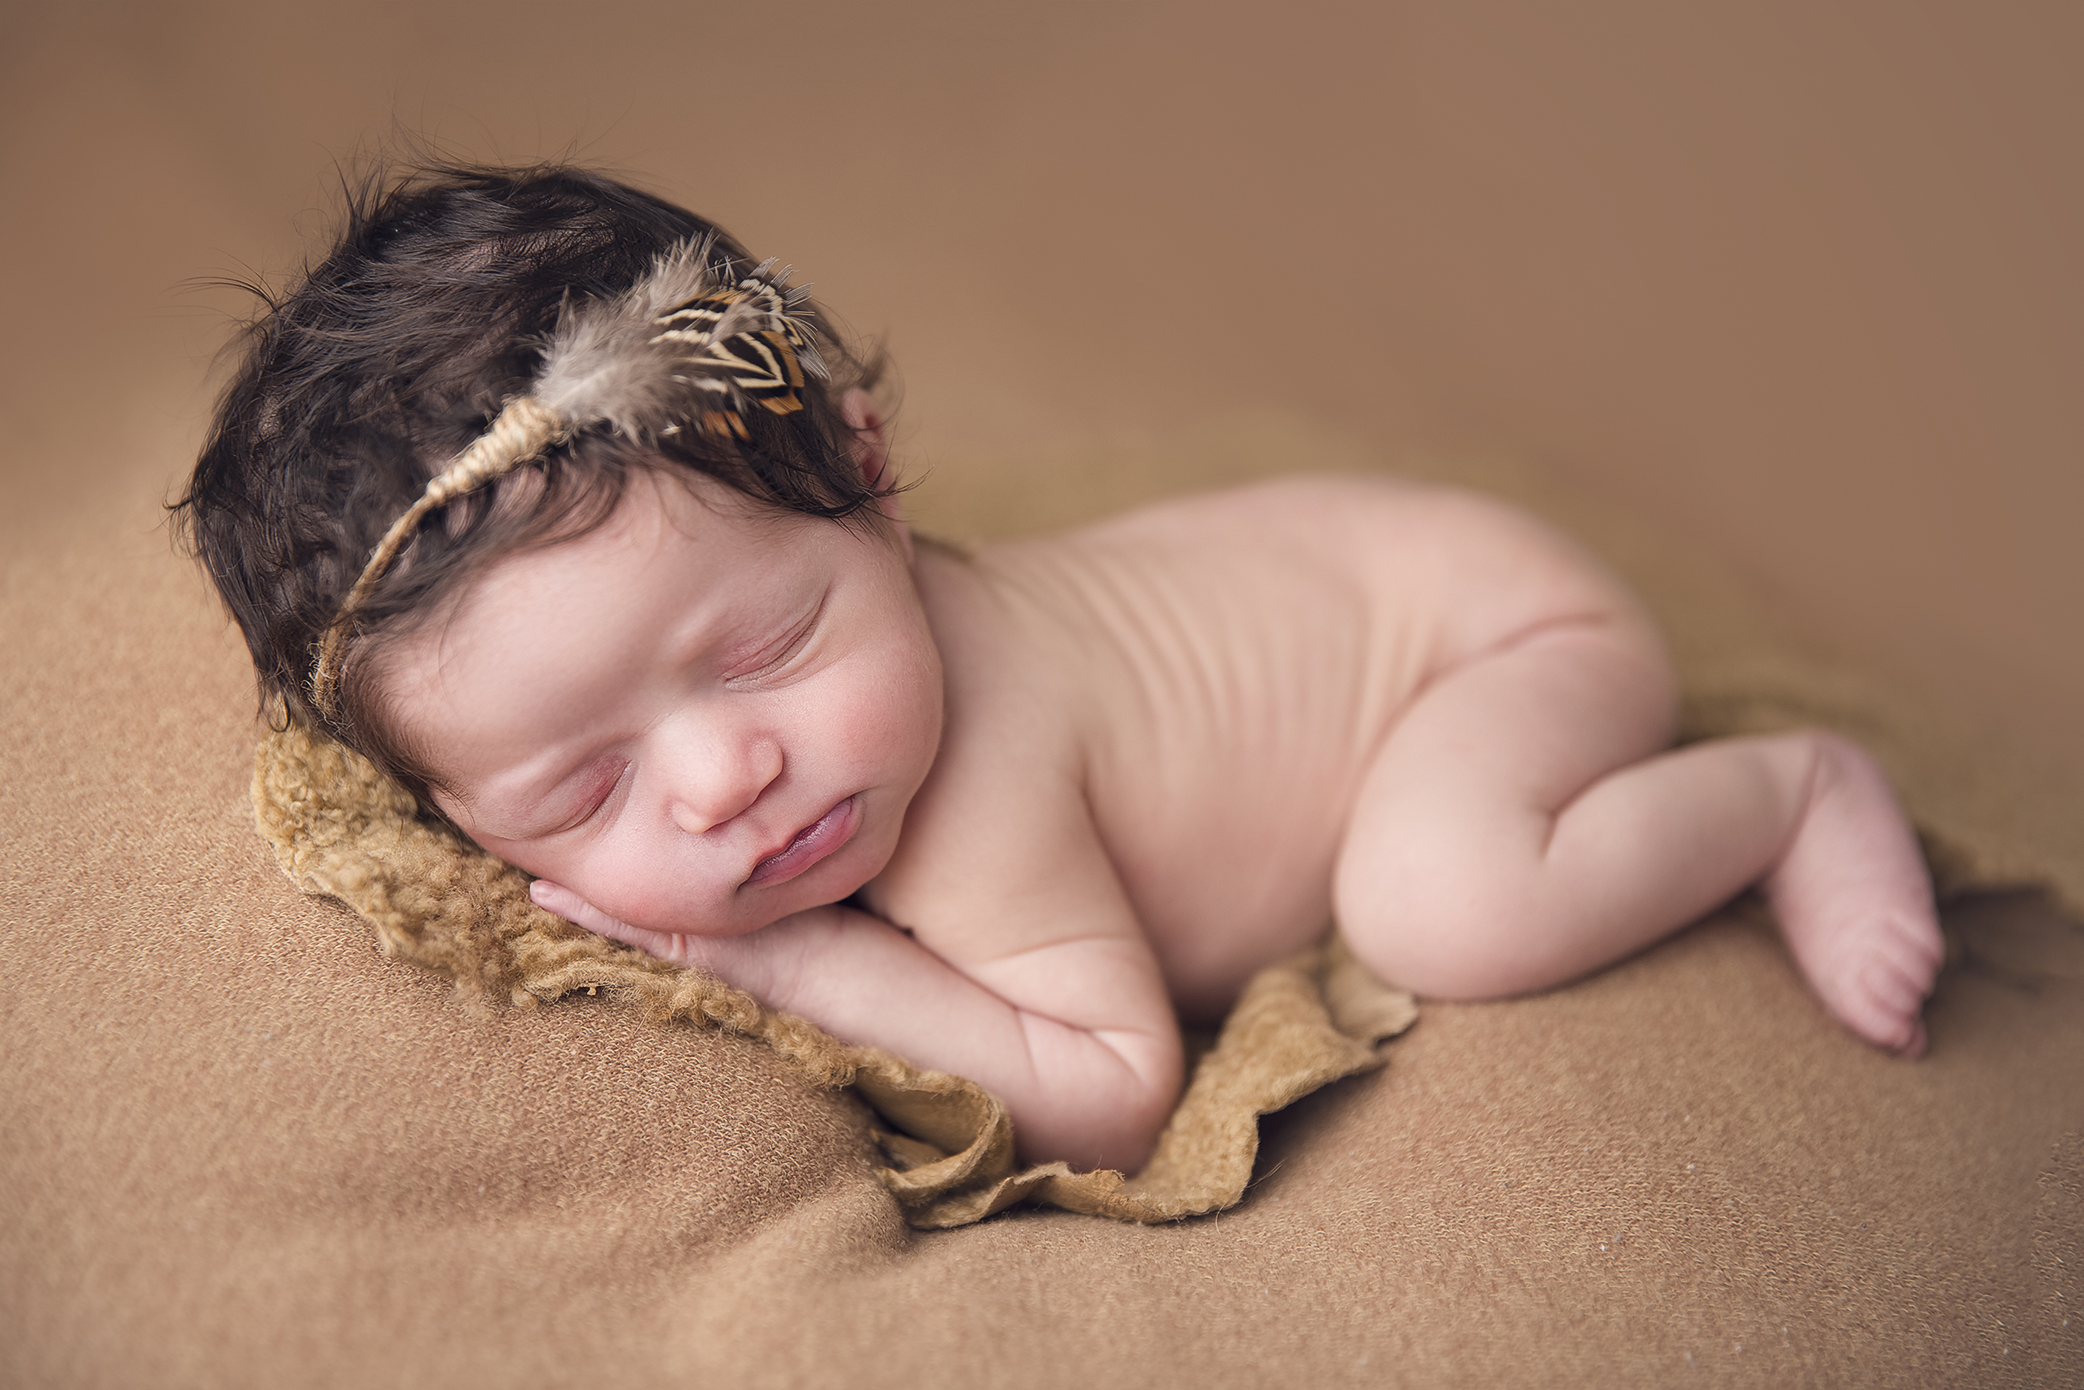 talenti_eventi_danielle_petti_images_by_dee_new_born_kids_photographer_05